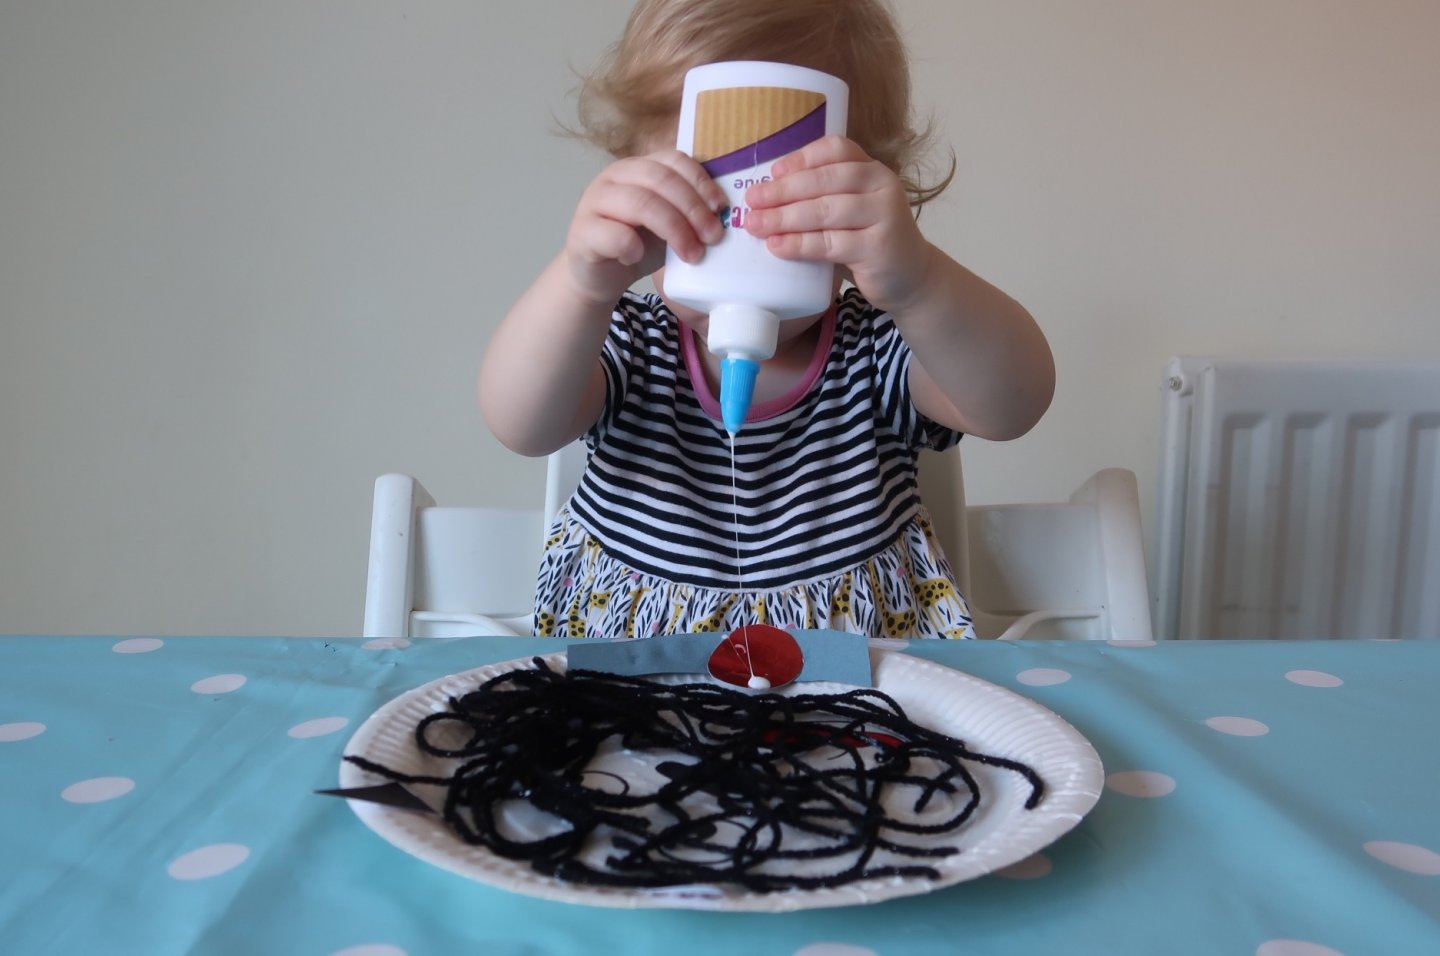 Hairy Maclary EYFS paper plate craft